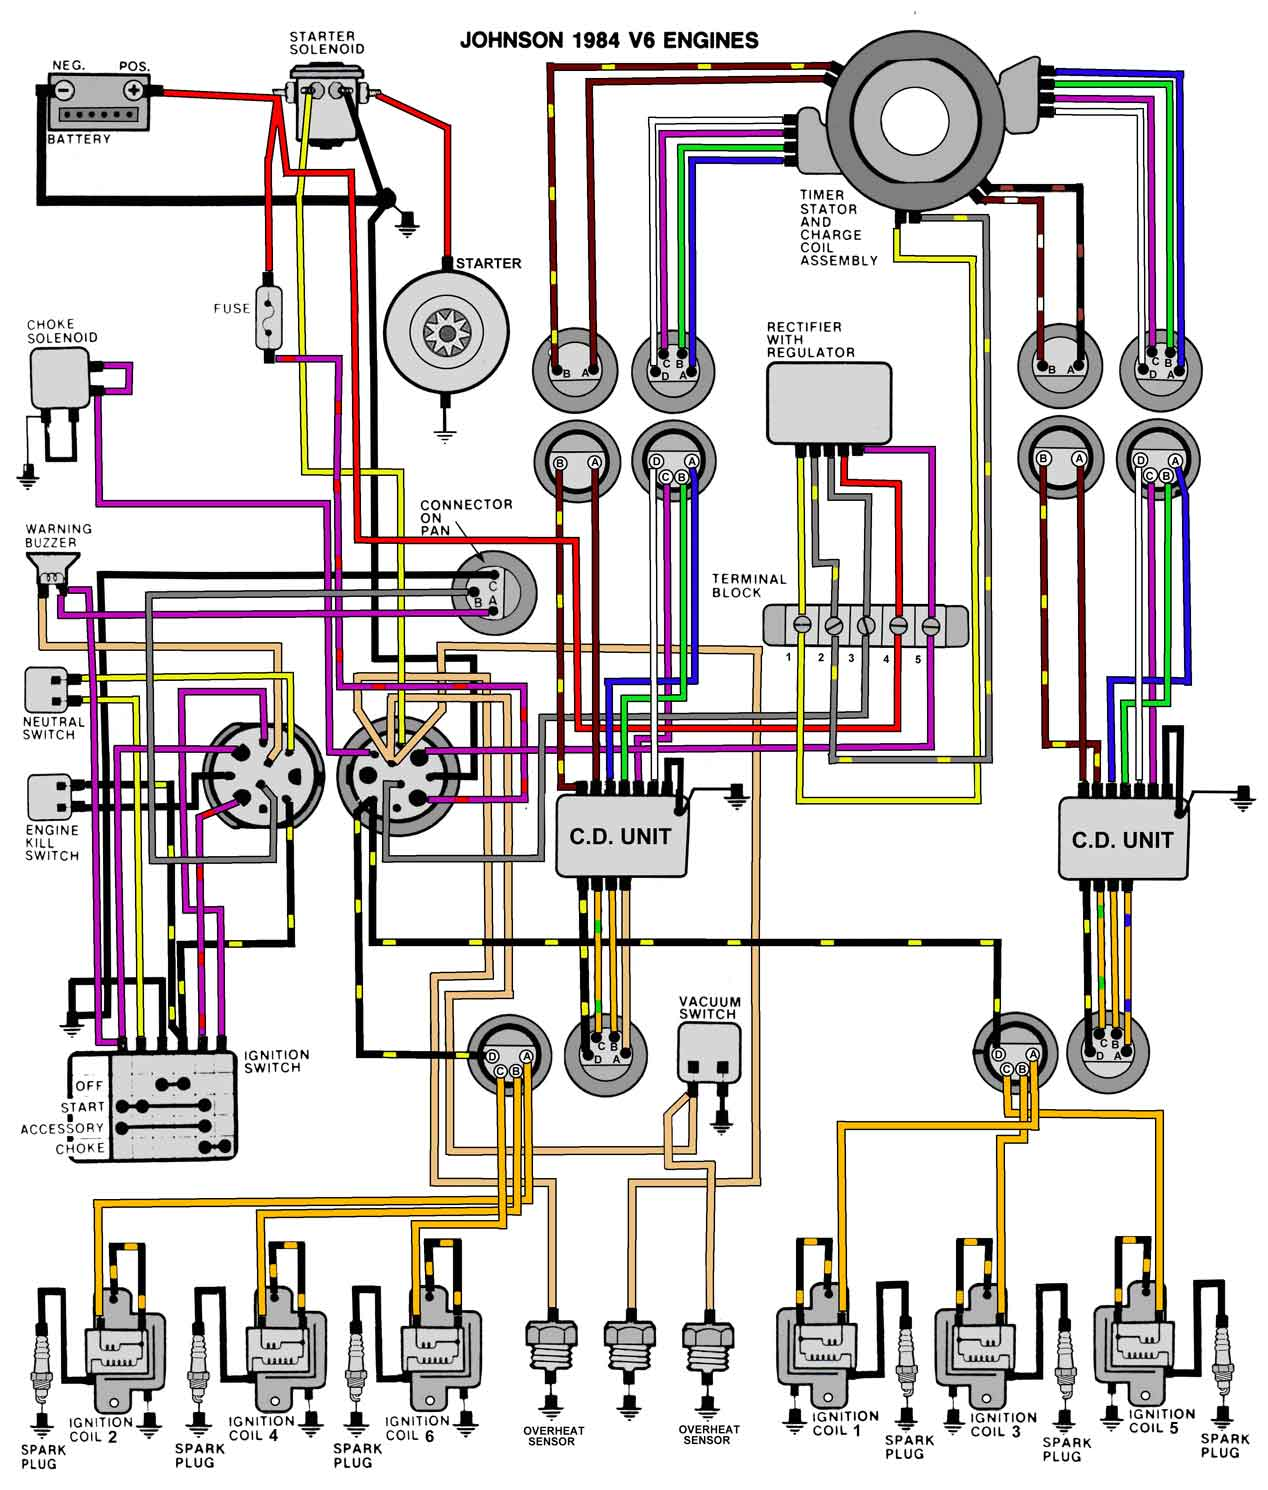 Boat Motor Wiring Diagram | Wiring Diagram on